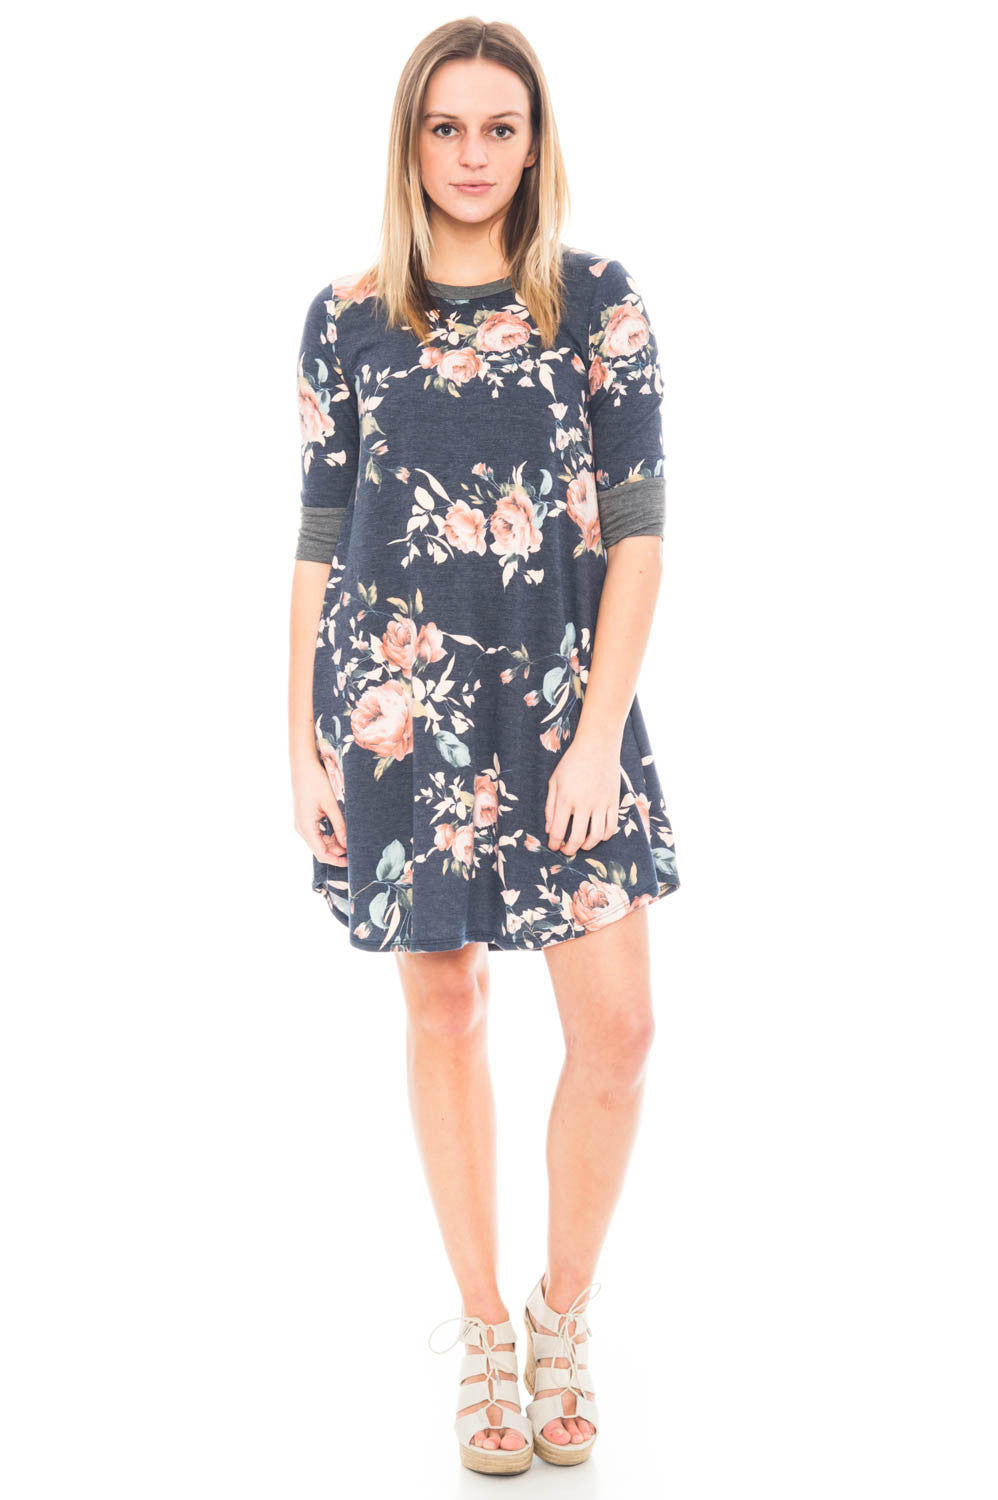 Dress - Floral Shift Dress with Pockets